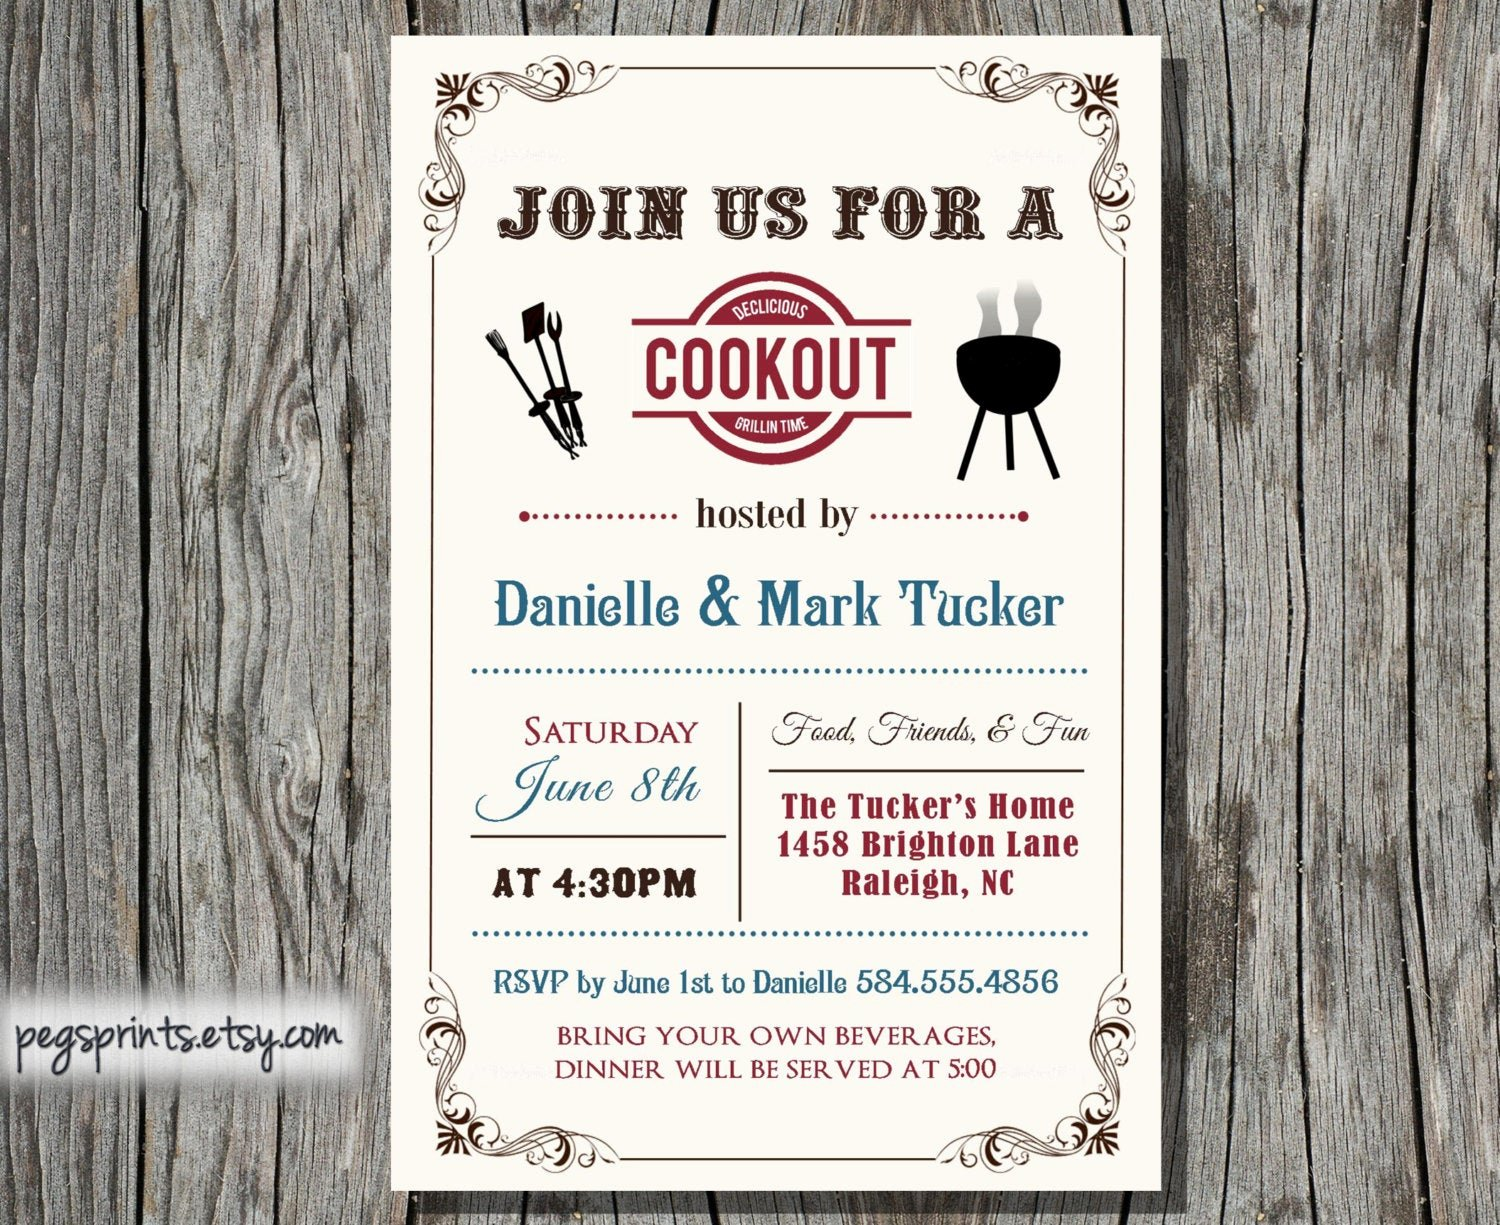 Free Printable Cookout Invitations Awesome Cookout Invitation Summer Family Bbq Printable by Pegsprints